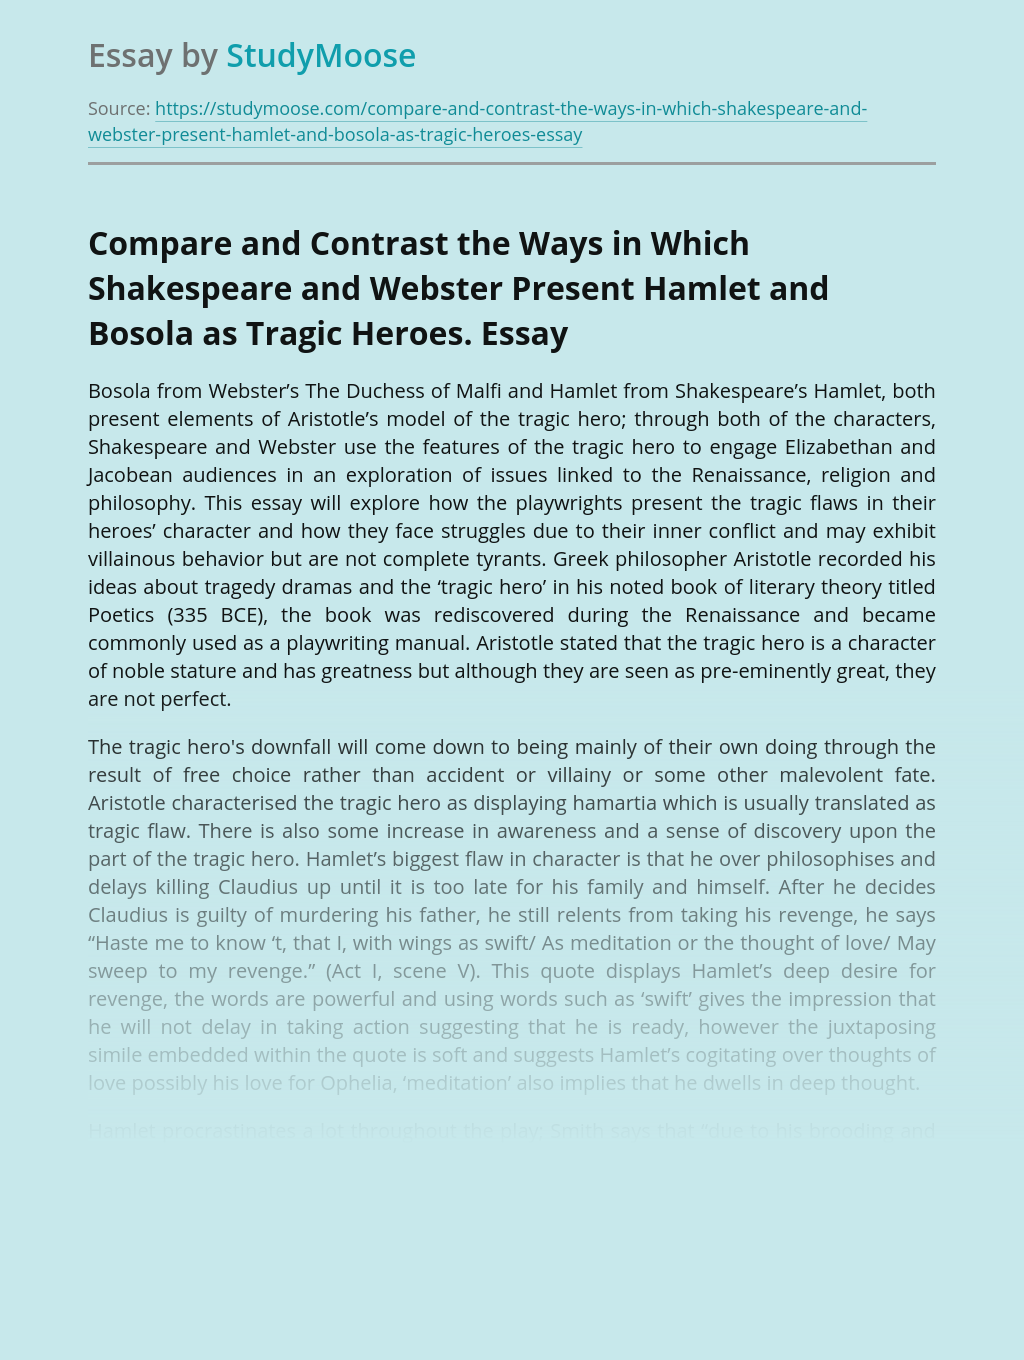 Compare and Contrast the Ways in Which Shakespeare and Webster Present Hamlet and Bosola as Tragic Heroes.